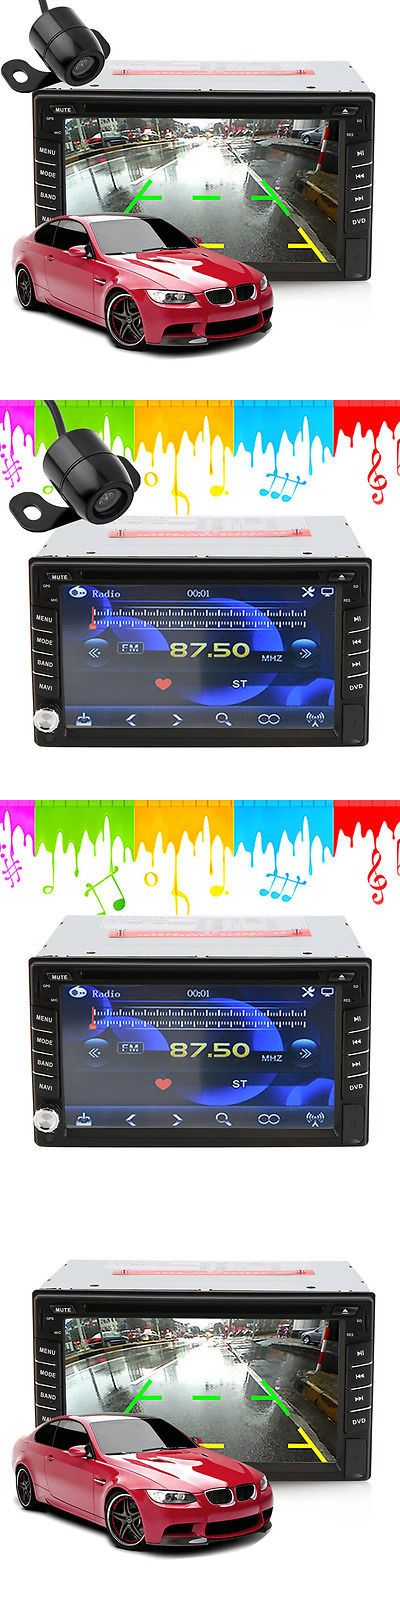 Vehicle Electronics And GPS: Double 2Din In Dash Gps Navi Car Dvd Player Bluetooth Auto Stereo Radio Usb+Cam -> BUY IT NOW ONLY: $94.97 on eBay!